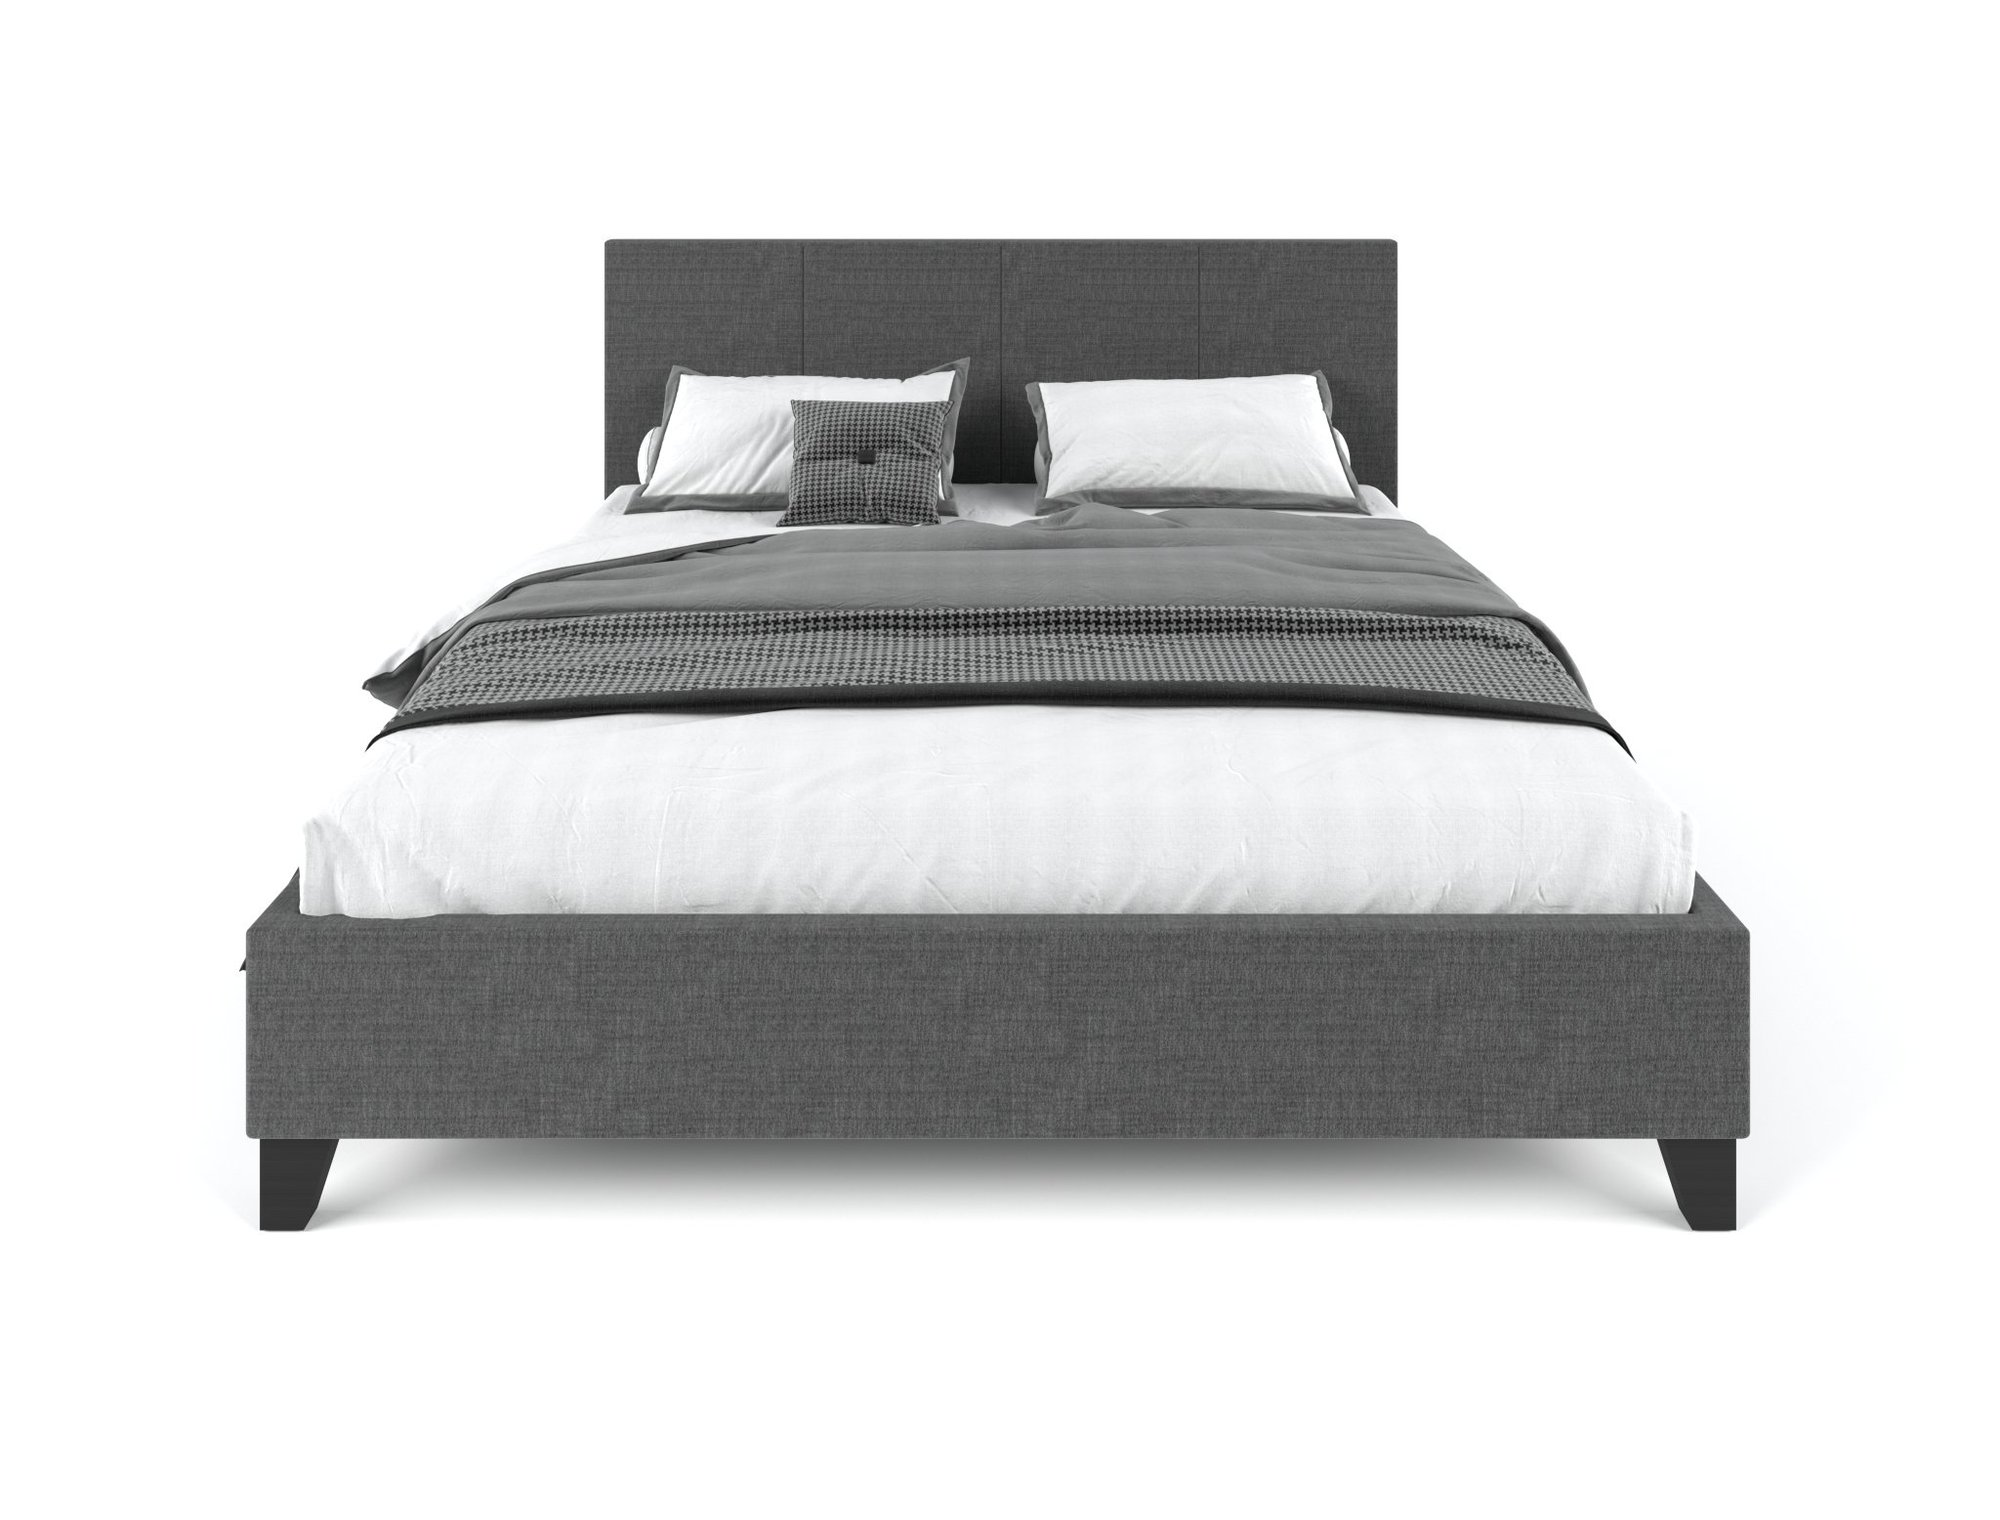 Pale Fabric Bed Frame - Charcoal Queen